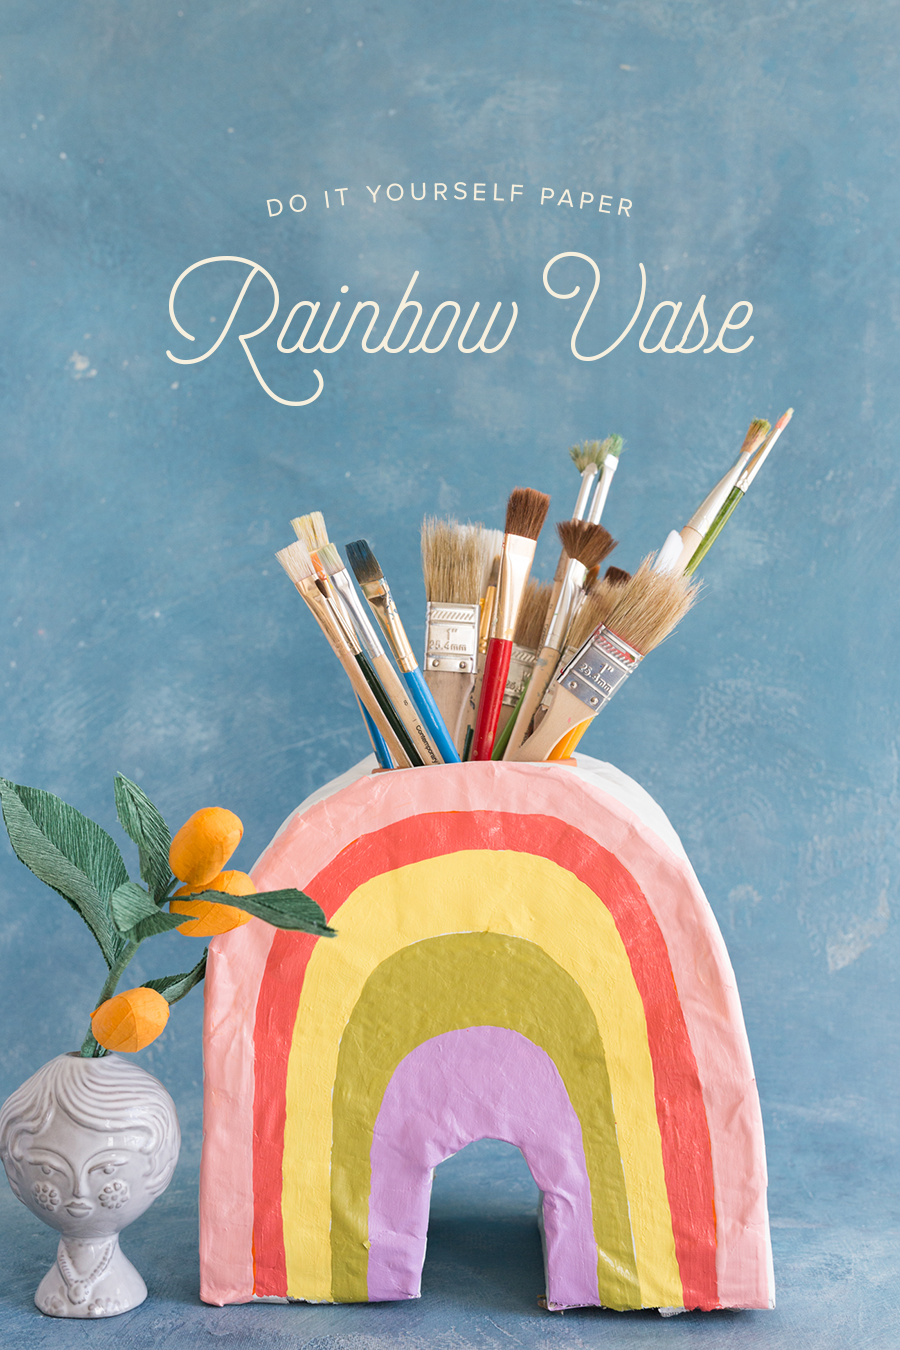 We're taking craft the rainbow to the next level! Organize your craft supplies and bring a bit of sanity to your workspace with a Paper Mâché Rainbow Vase.